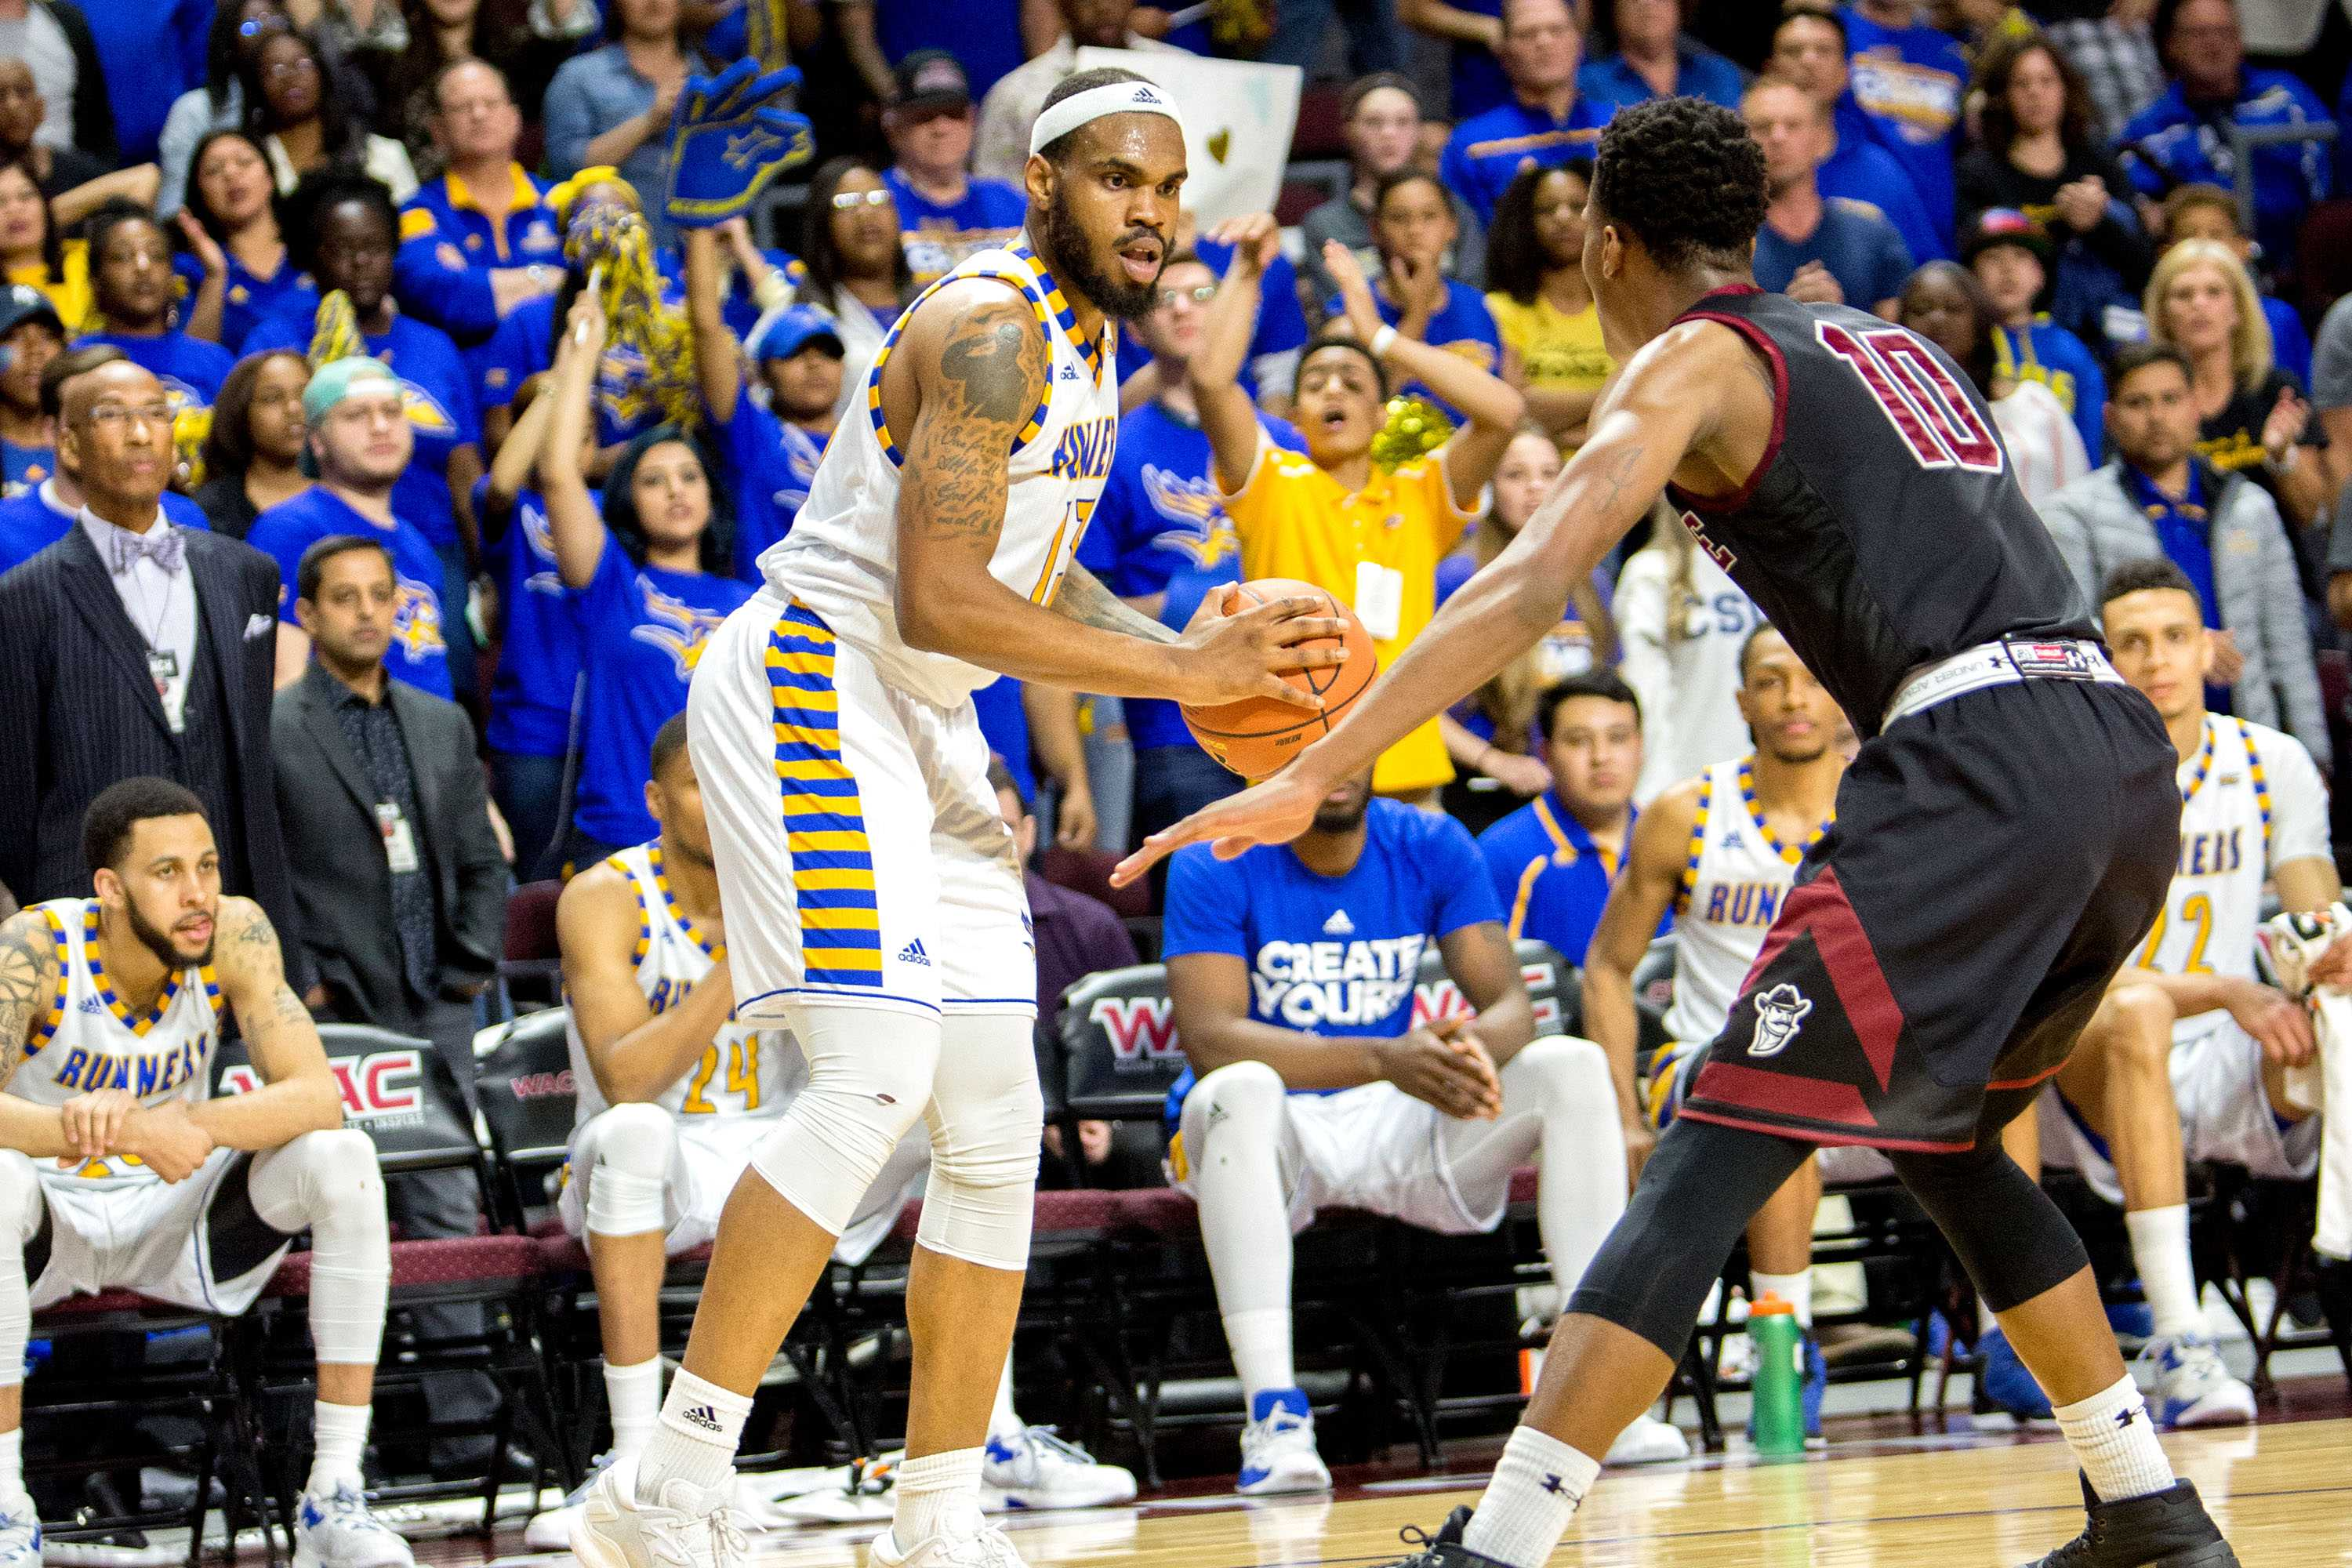 Briggs fuels Cinderella run in NIT